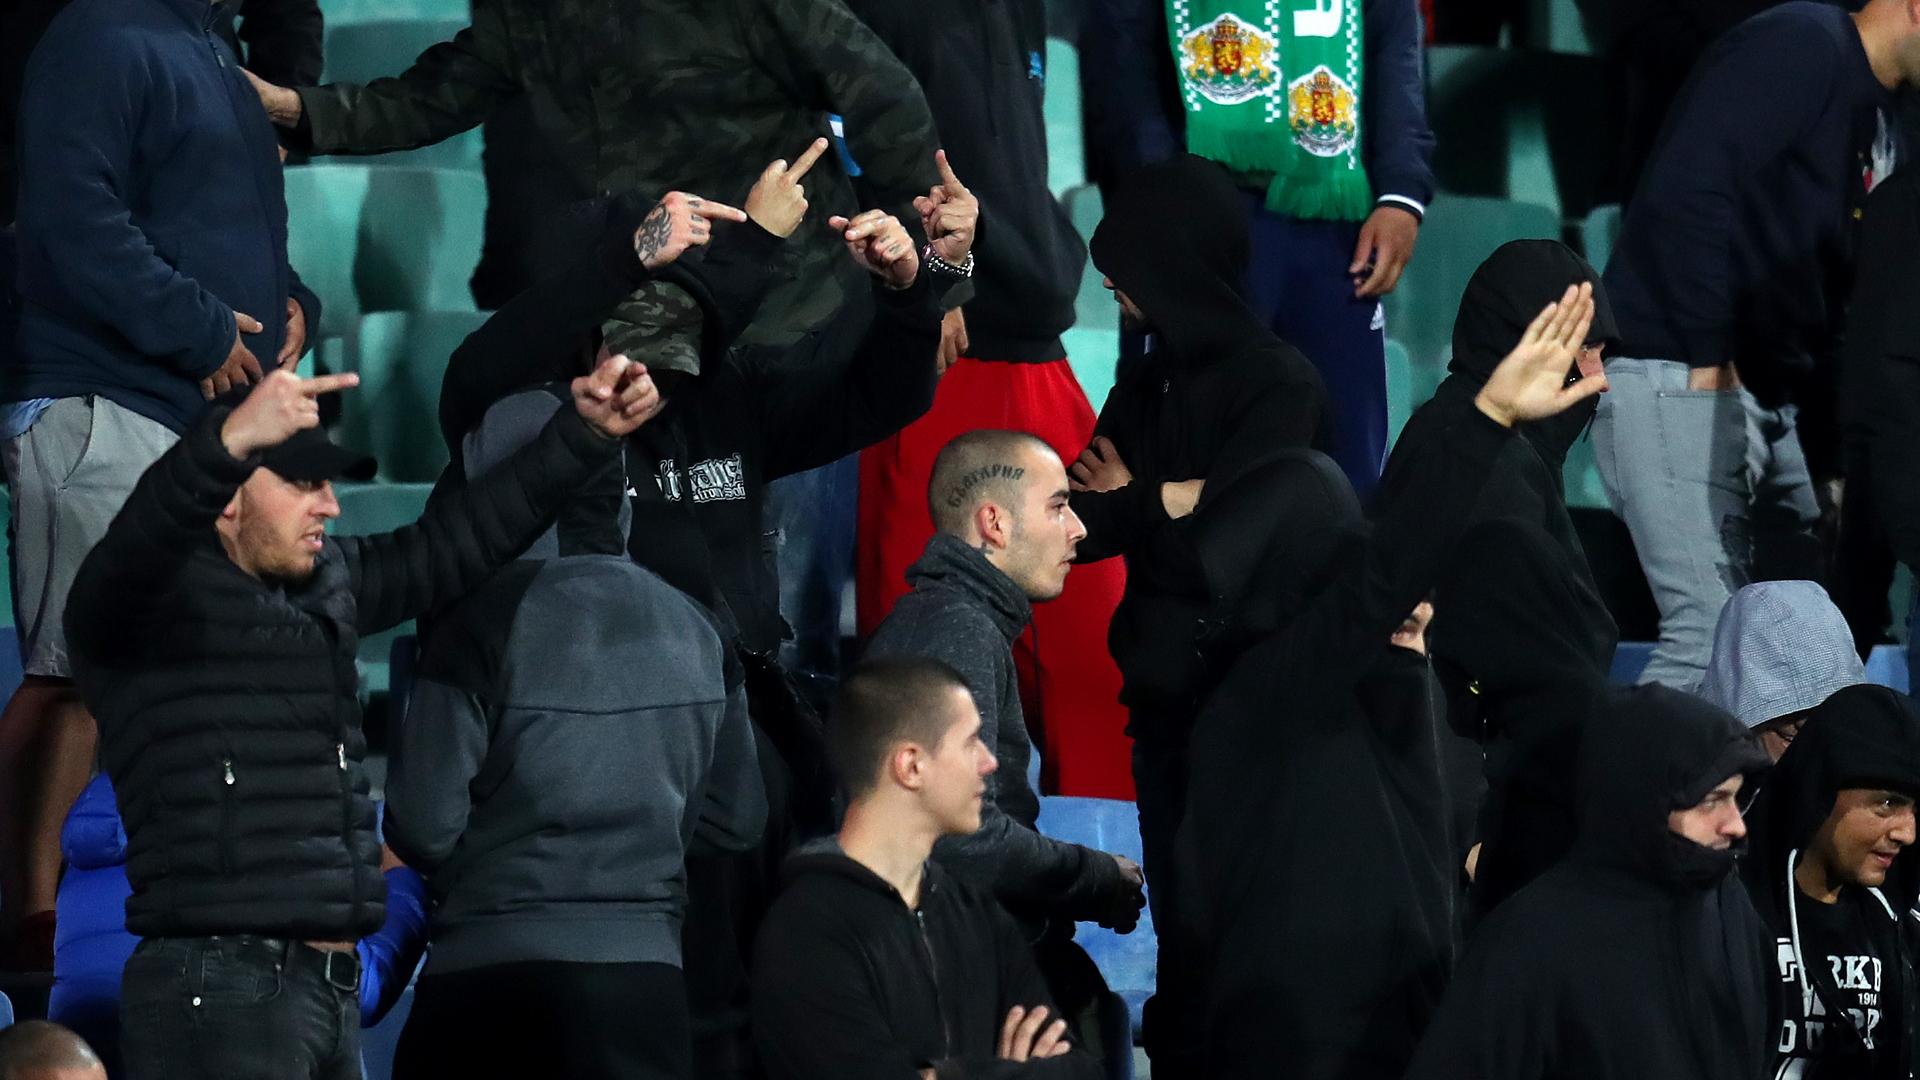 Bulgaria boss Balakov 'did not hear' racist chanting